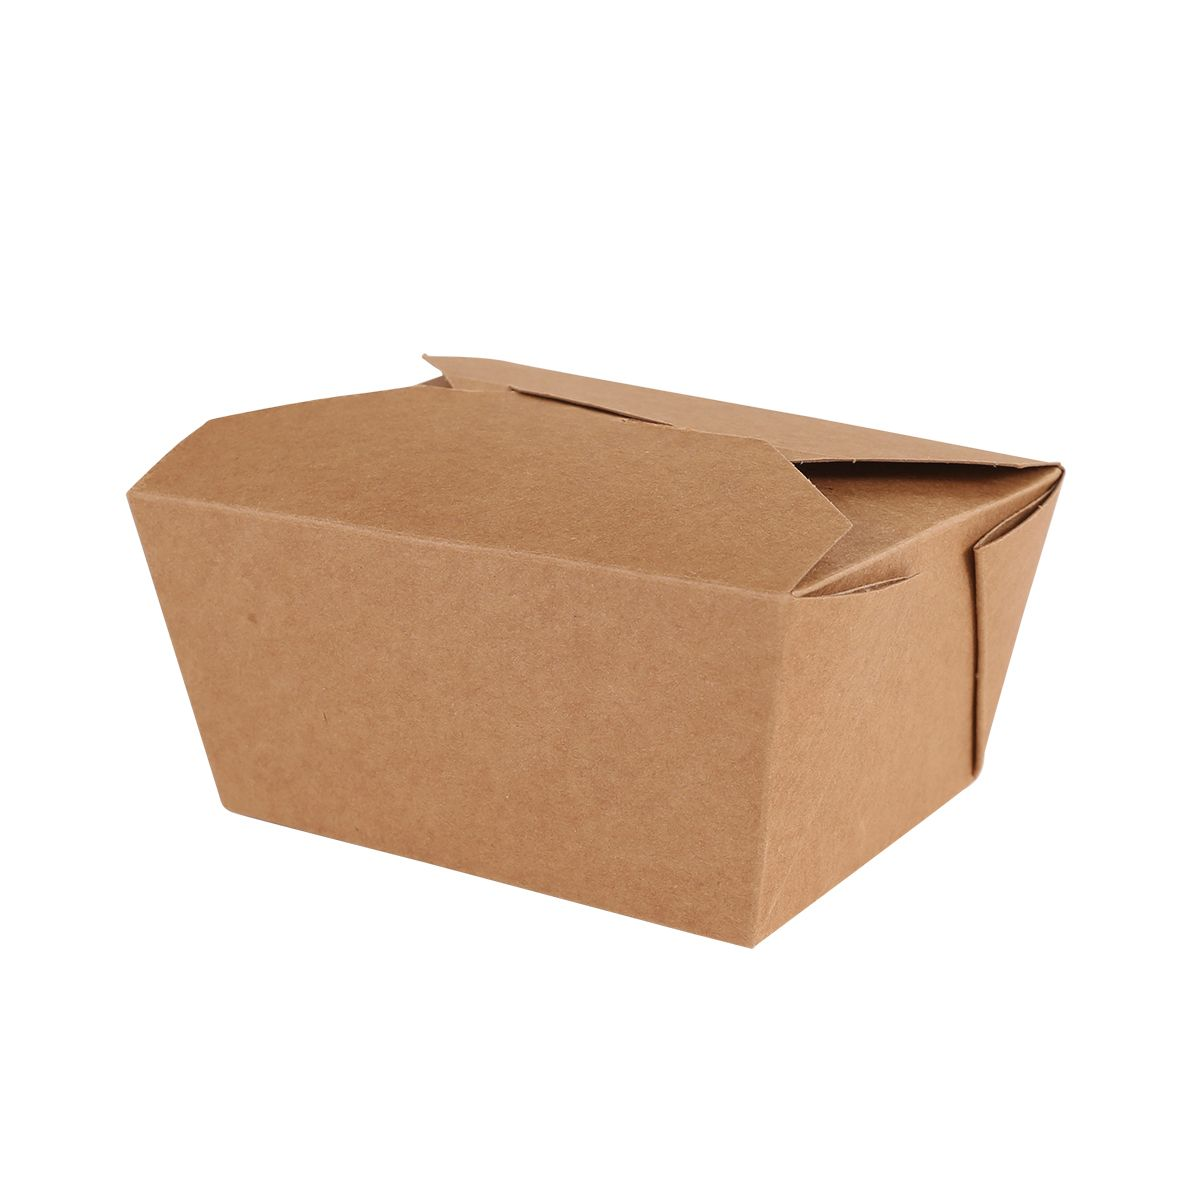 To Go Box Food Grade Takeout Boxes Measuring 5 X 4 X 2 1 2 In Coated Kraft Colored Chipboard Contains 10 B Diy Party Decorations Treat Boxes Handmade Tags